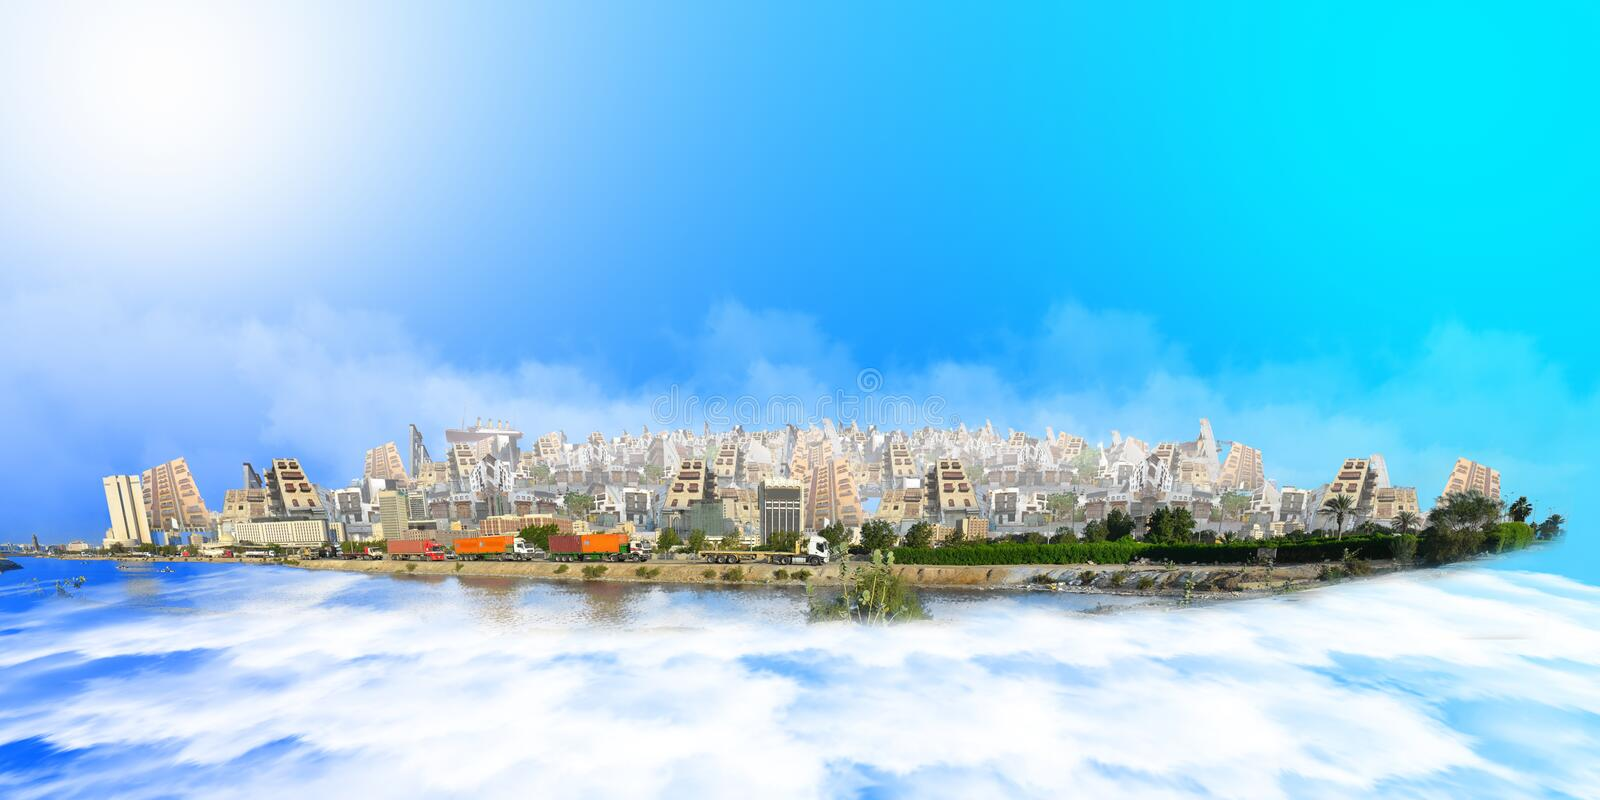 Old and new jeddah over sea of clouds at daylight and blue sky. From imagination stock illustration